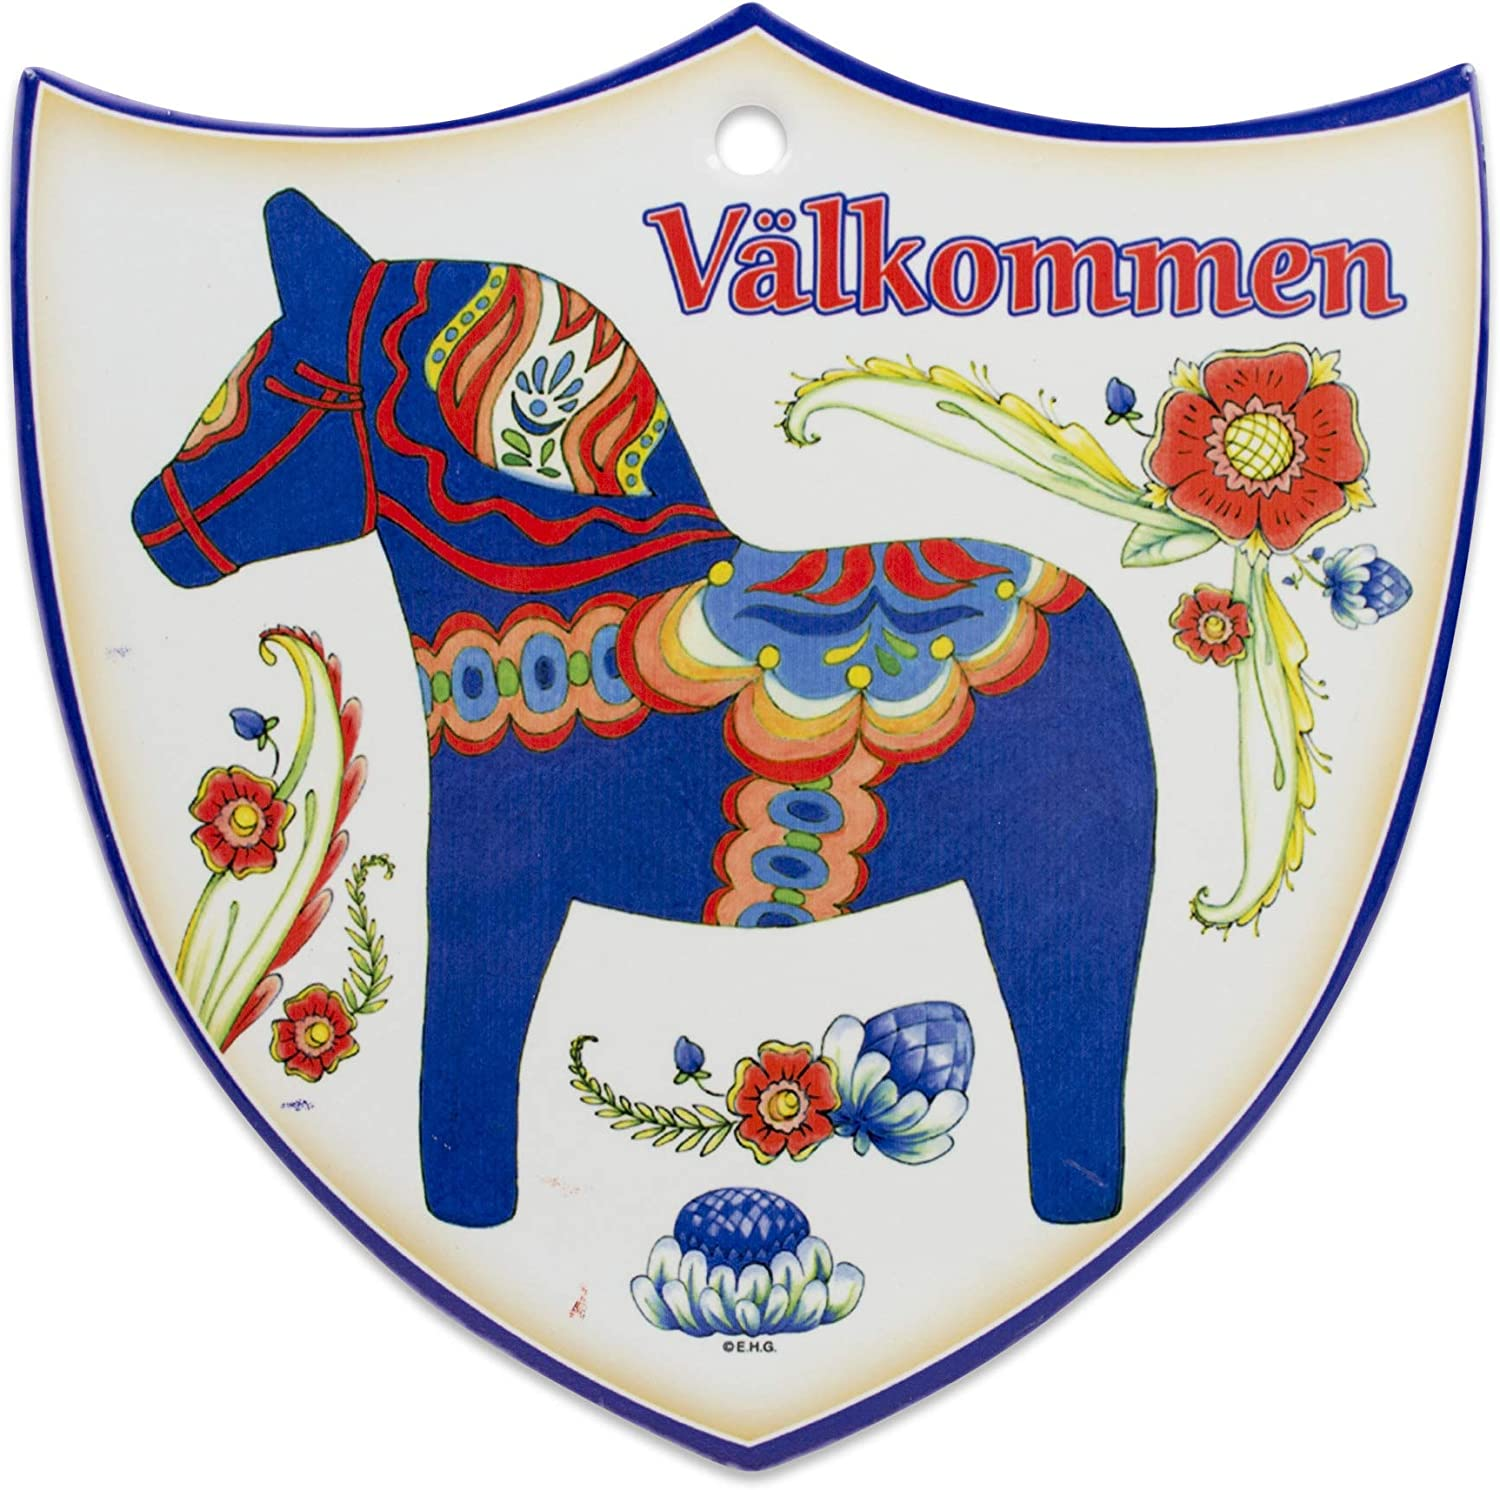 """Essence of Europe Gifts E.H.G Decorative Swedish Blue Dala Horse Arwork with Valkommen Wall Hanging Ceramic Welcome 7.5"""" Shield by E.H.G."""